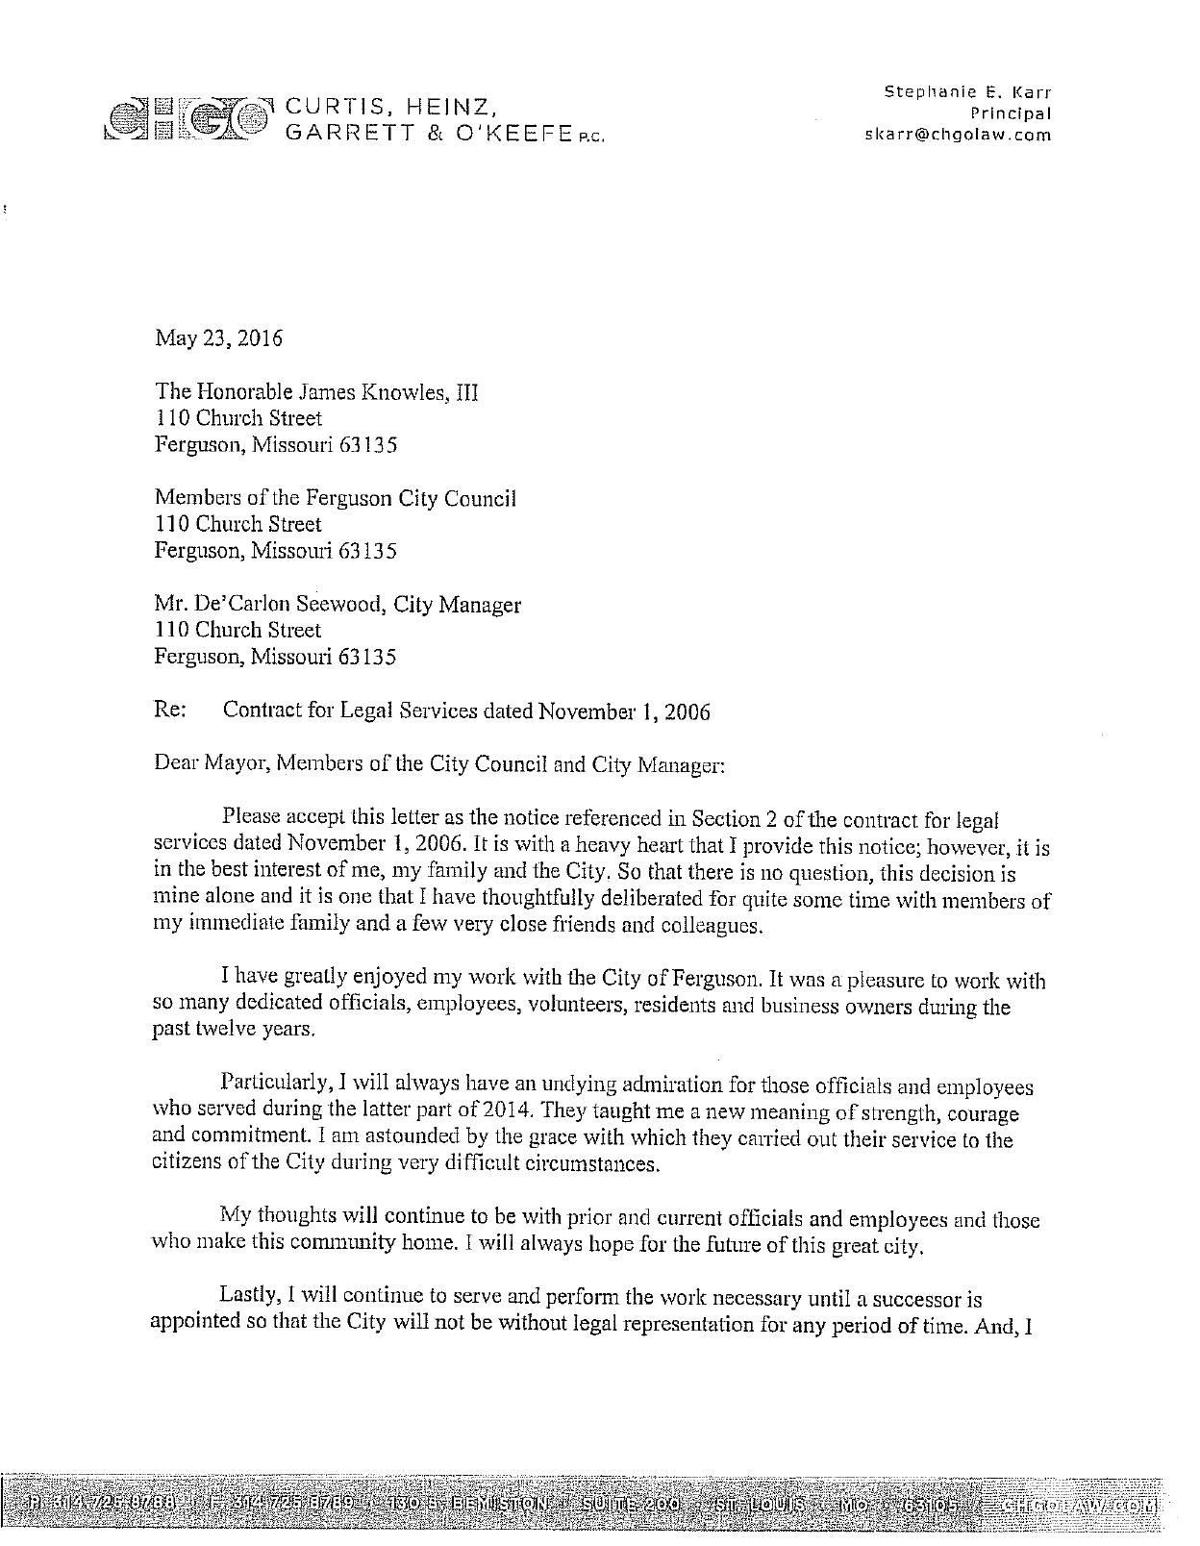 Stephanie karr resignation letter online stltoday download pdf stephanie karr resignation letter expocarfo Choice Image